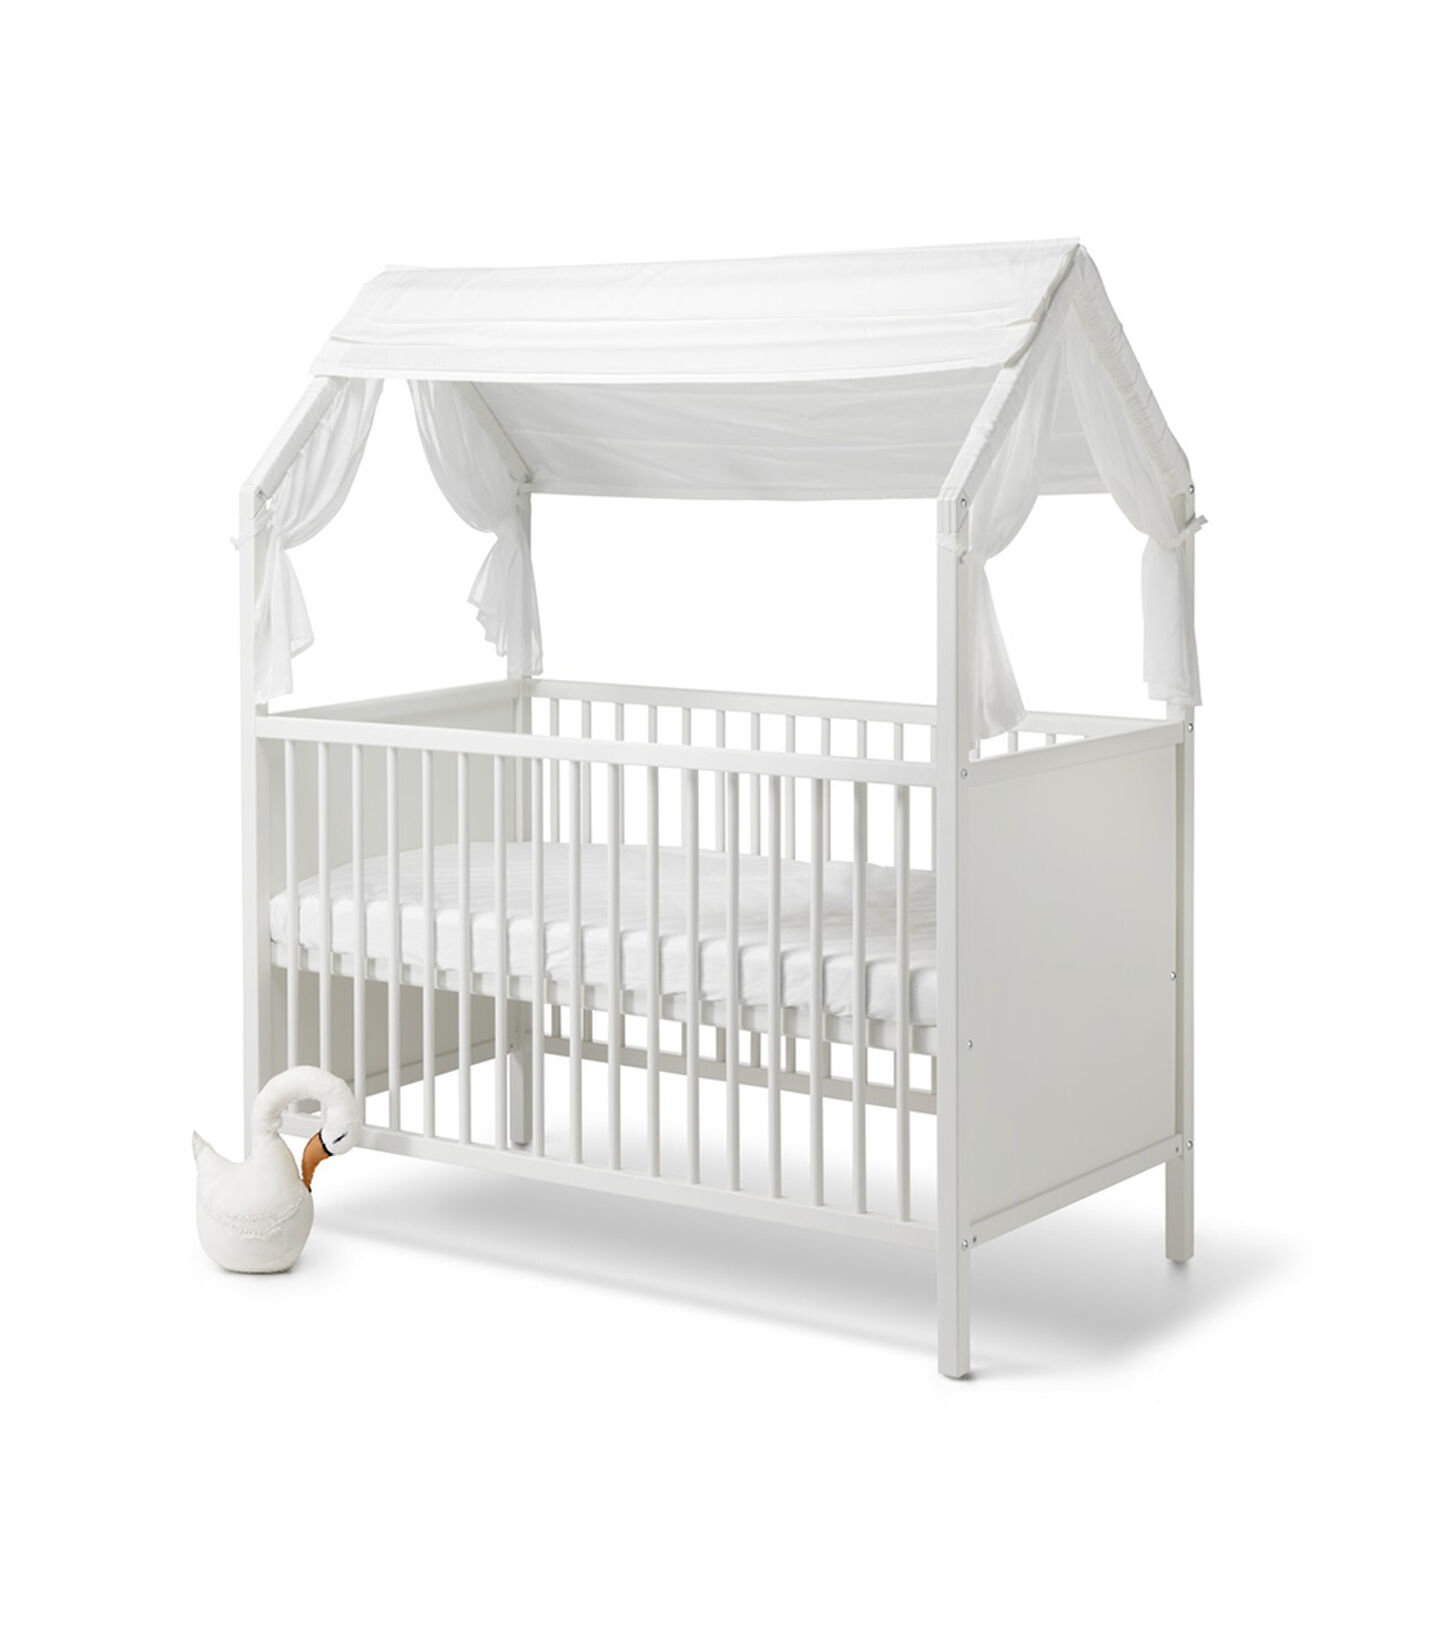 Stokke® Home™ Bed with Stokke® Home™ Bed Roof textile, White.